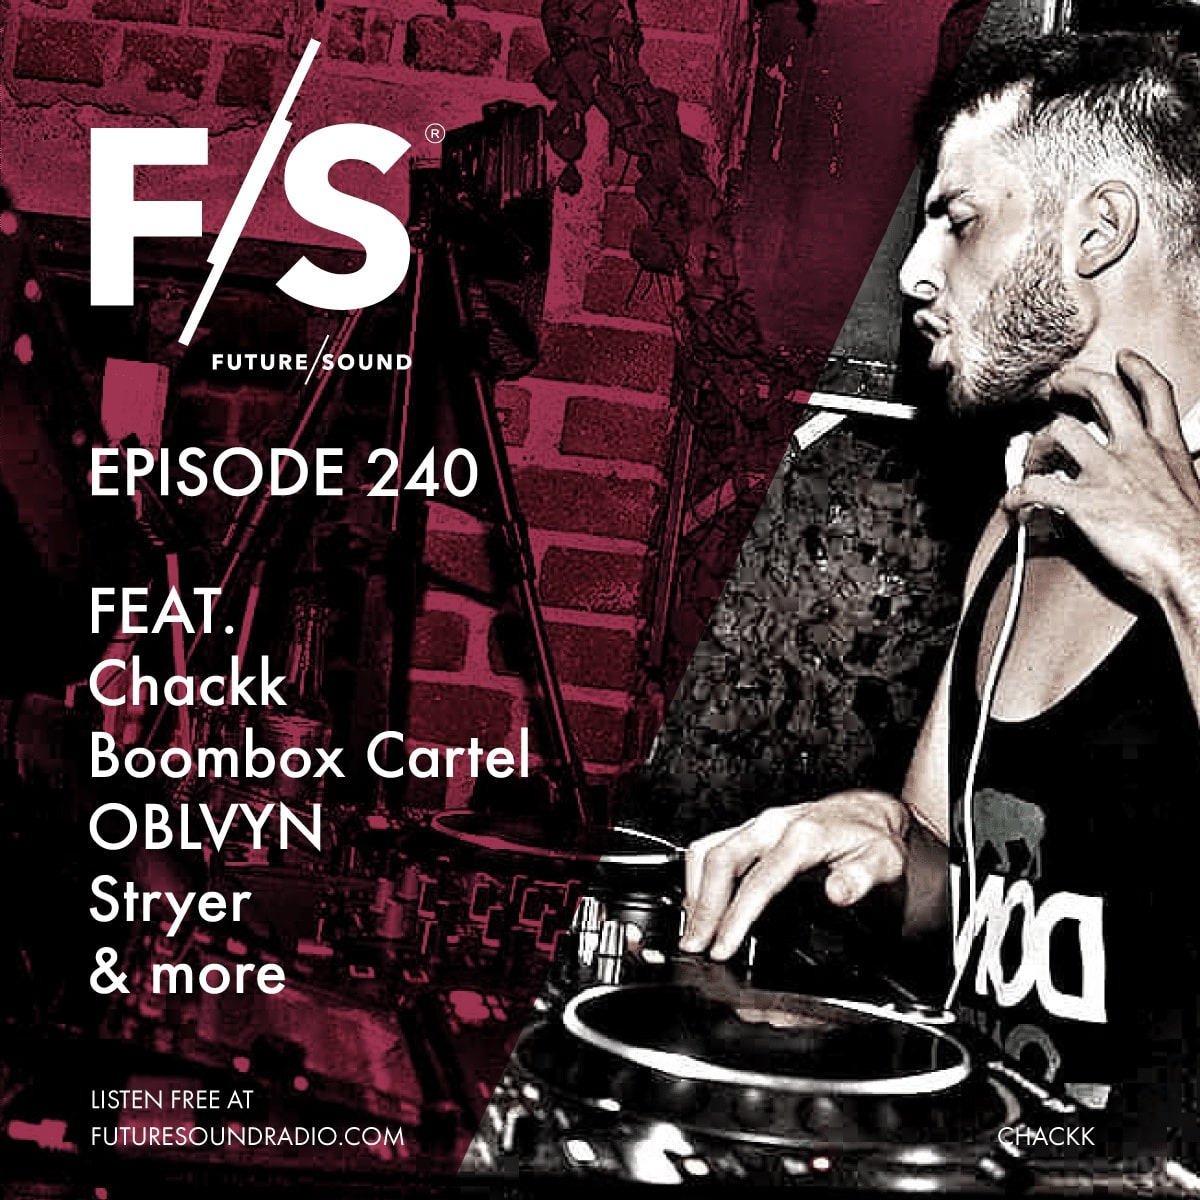 Future/Sound Episode 240 feat. Chackk, Boombox Cartel, OBLVYN, Stryer and more | Trap, FutureBass, Dubstep, EDM and more